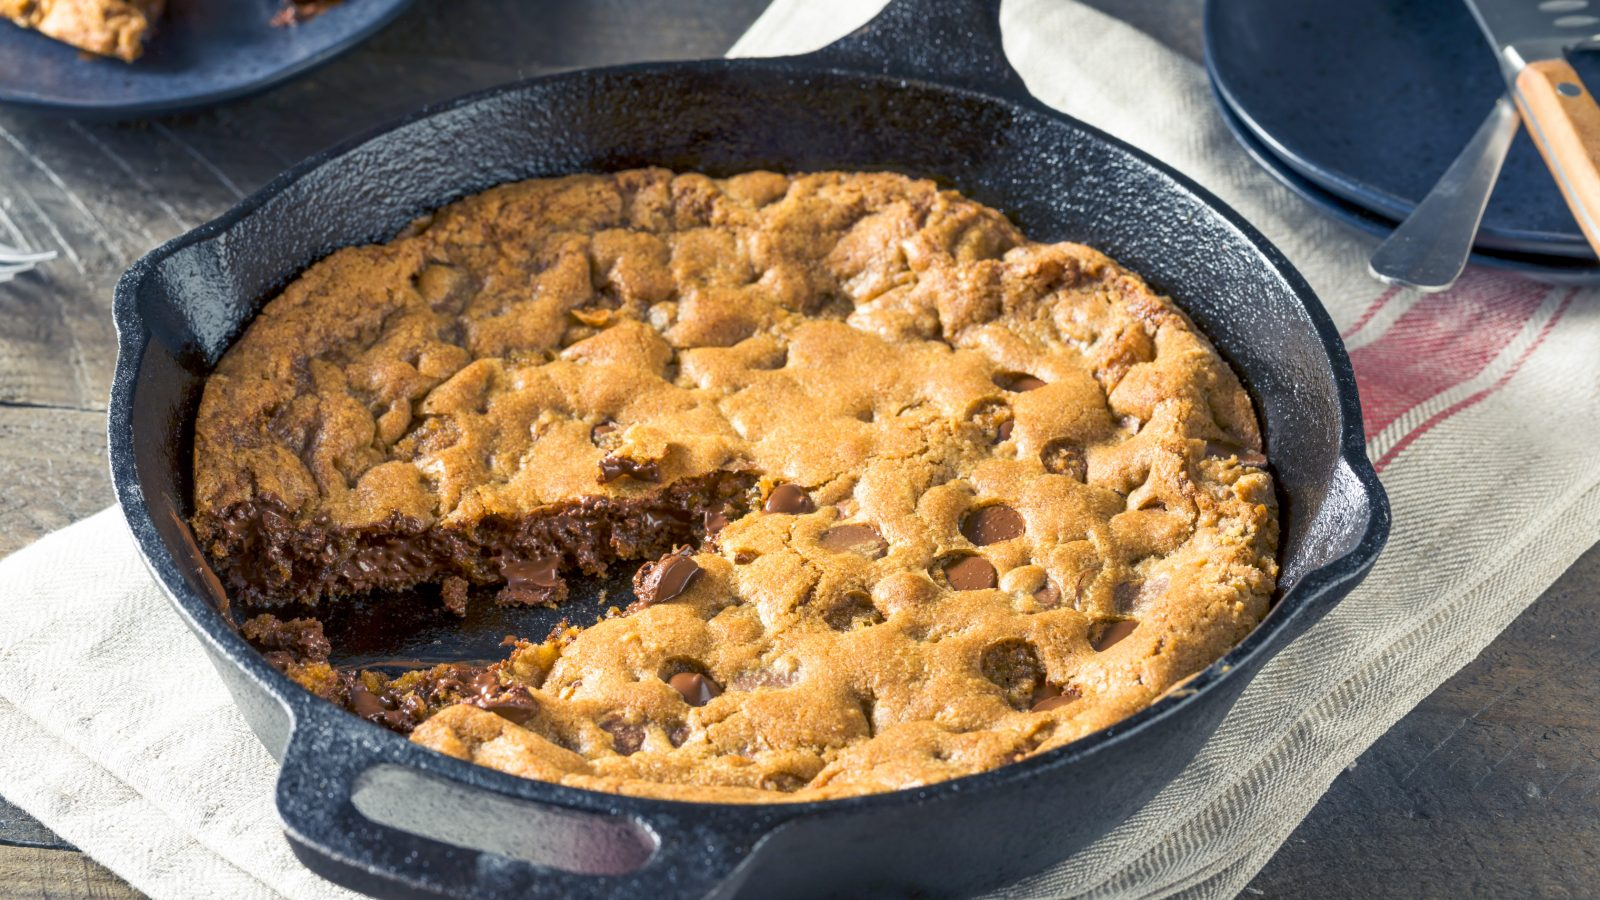 vegan skillet cookie being made in a cast iron pan